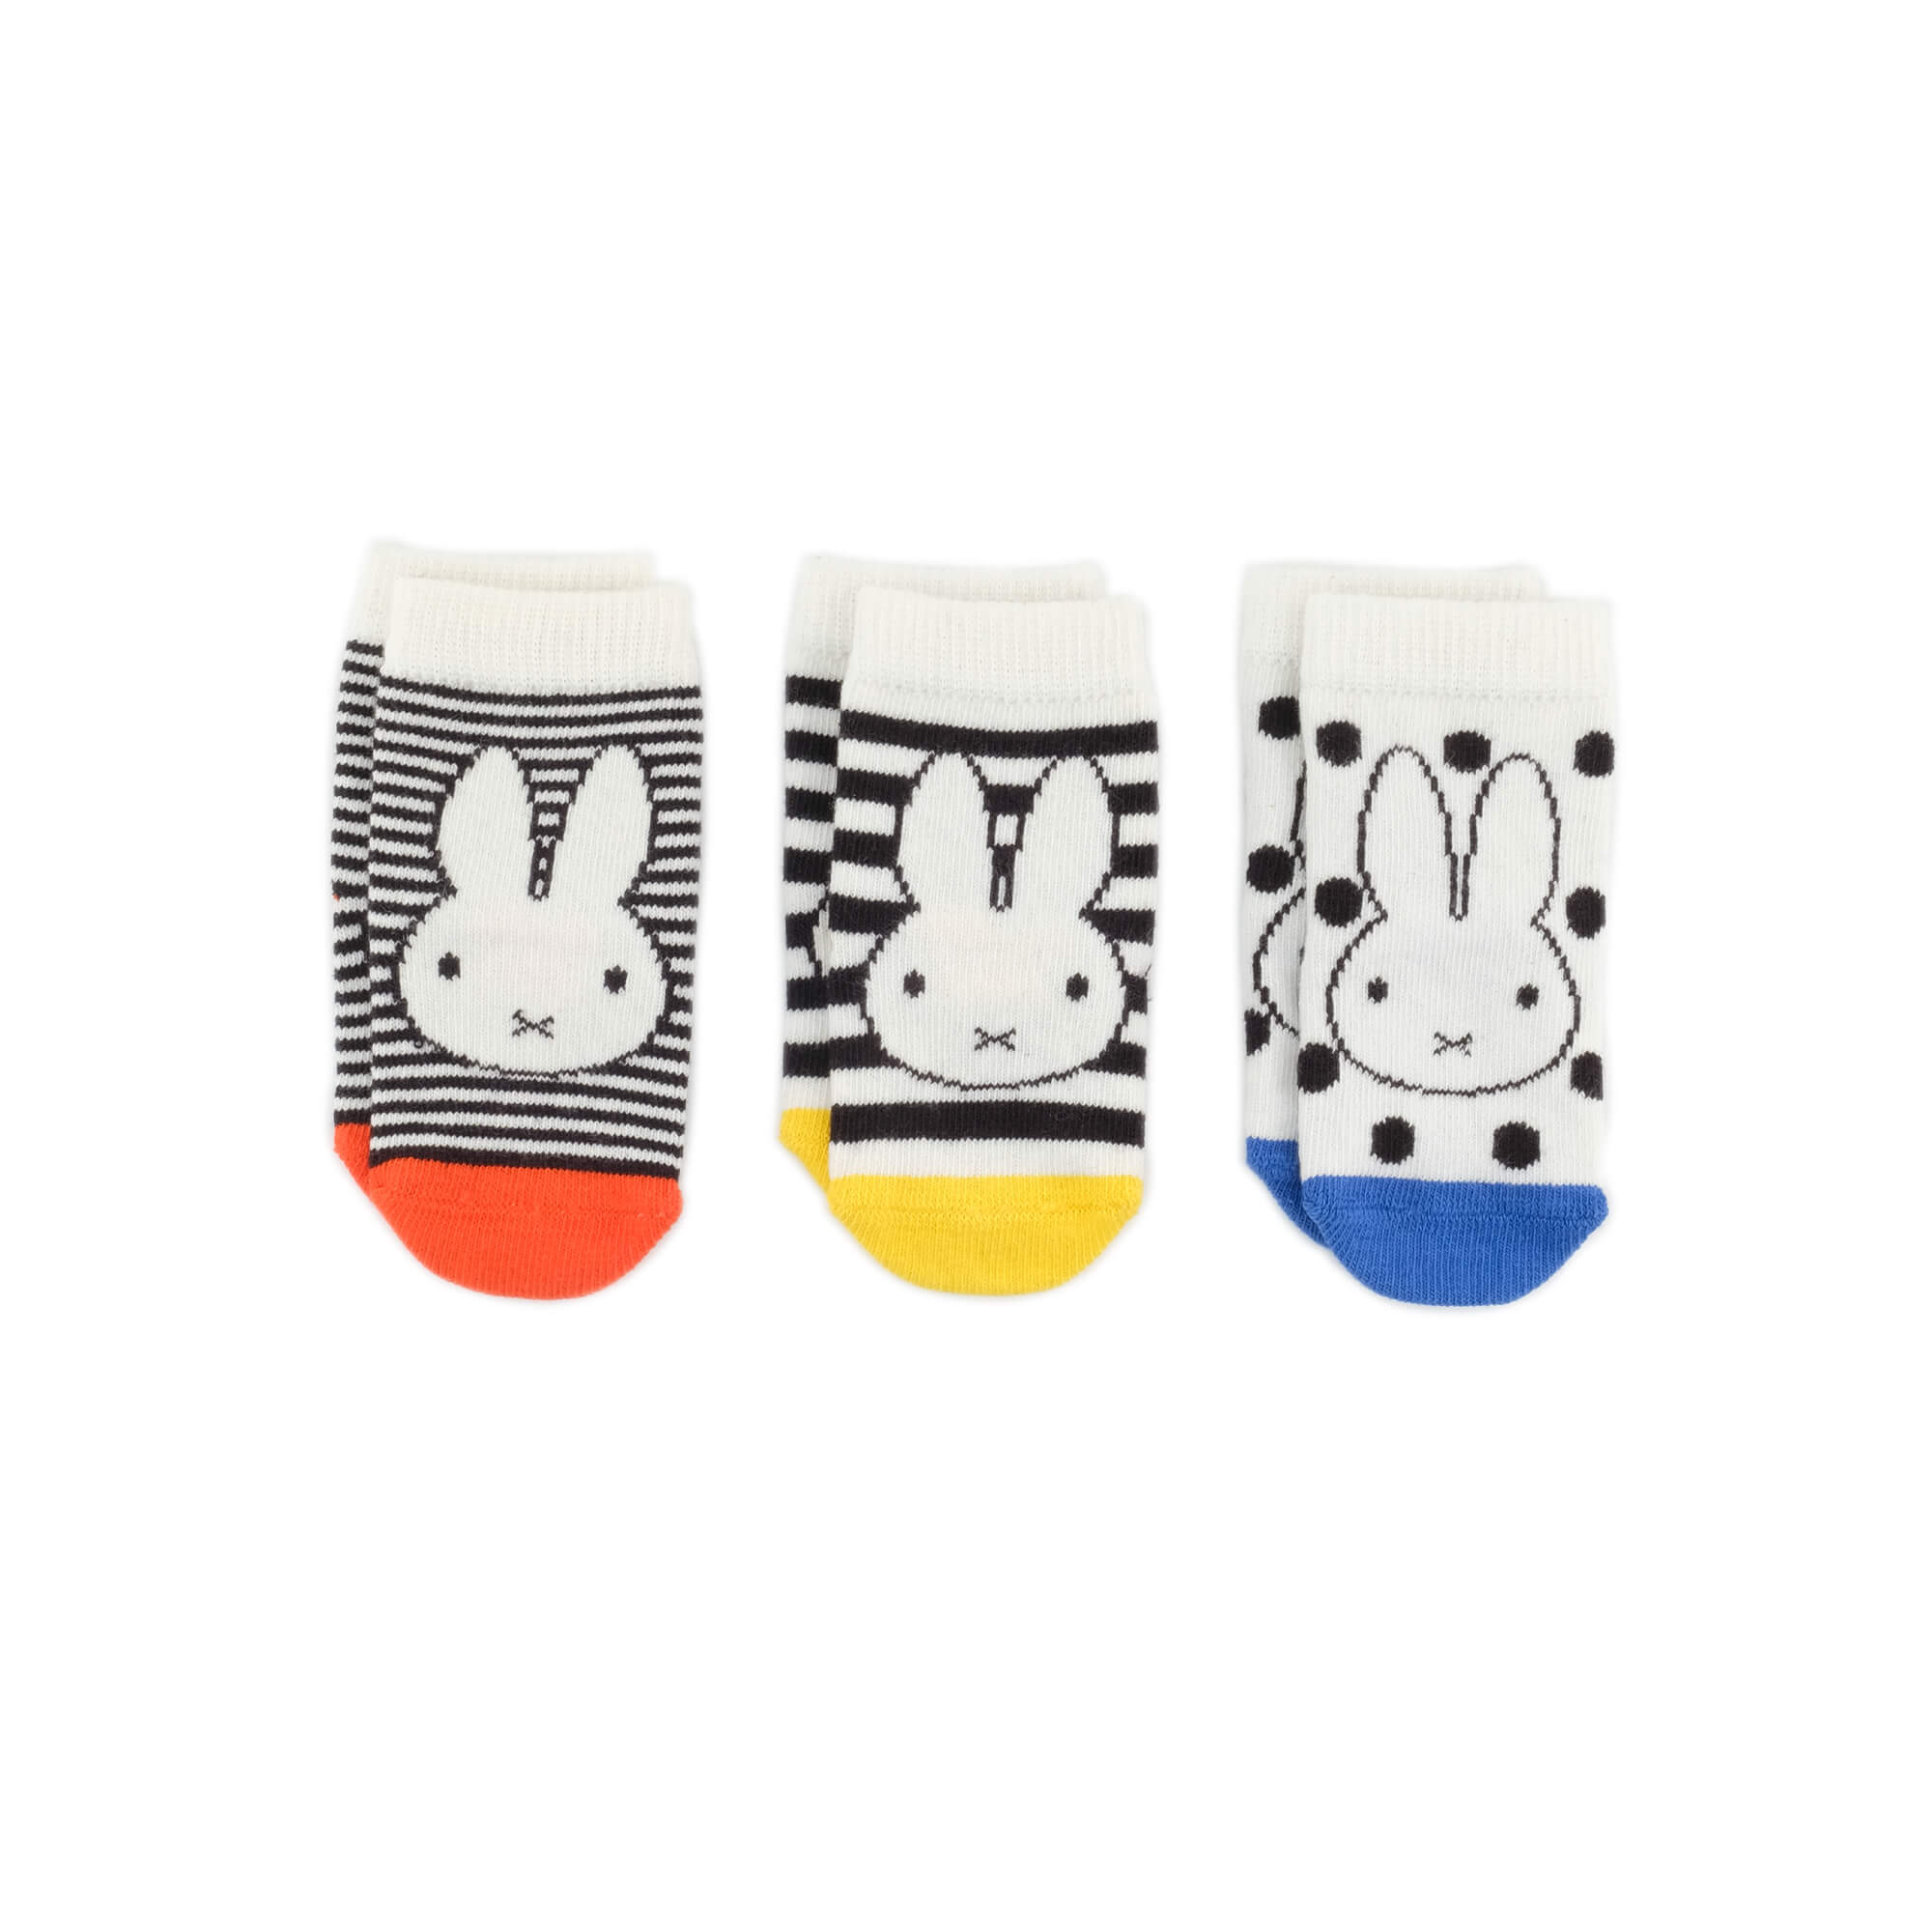 Baby Socks - Miffy x Etiquette Classic Baby Socks Gift Box - Multi⎪Etiquette Clothiers